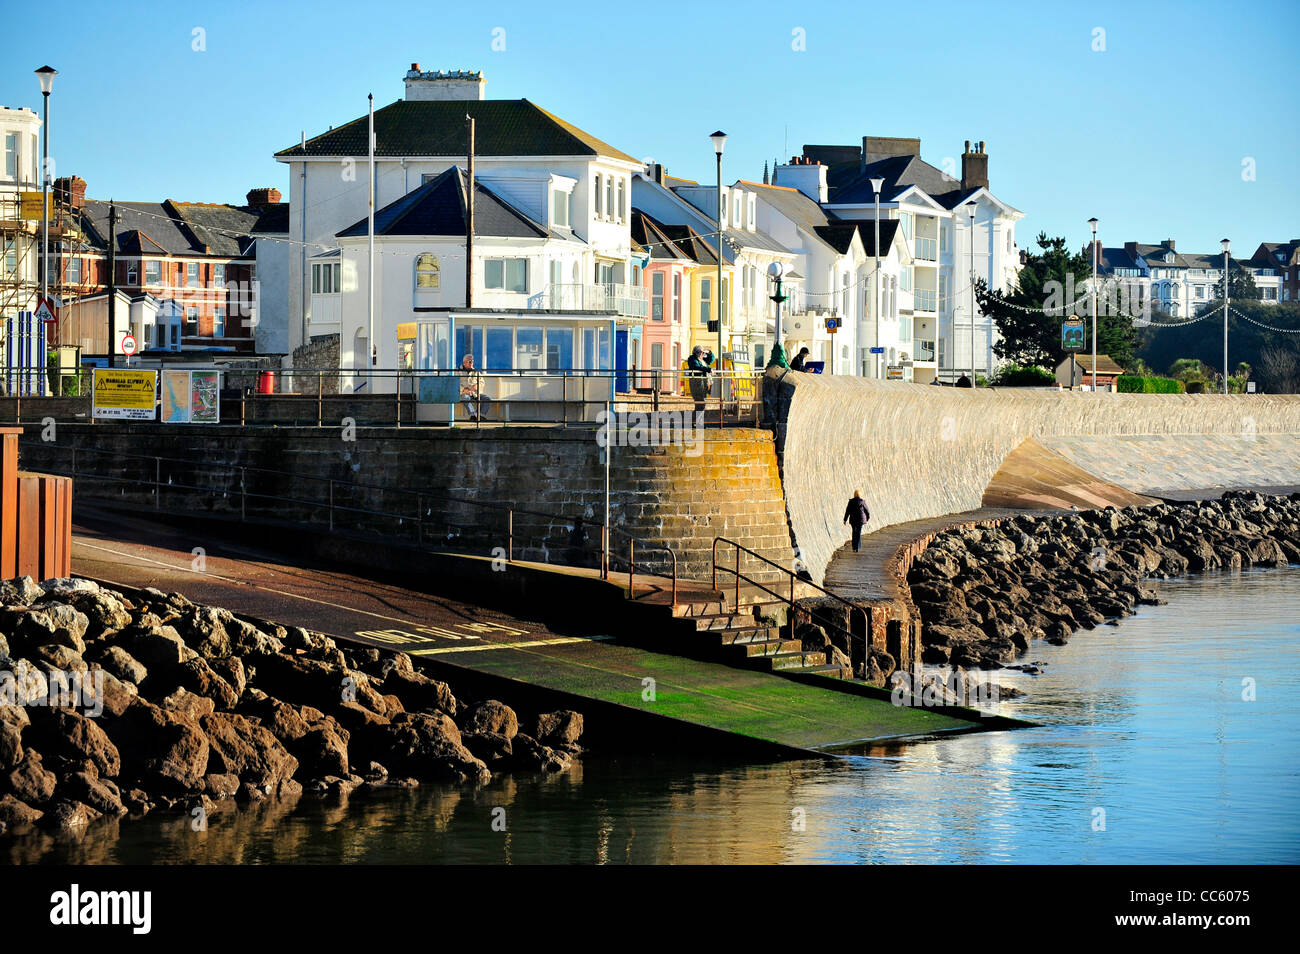 Mamhead Slipway - Exmouth - Devon - UK - Stock Image